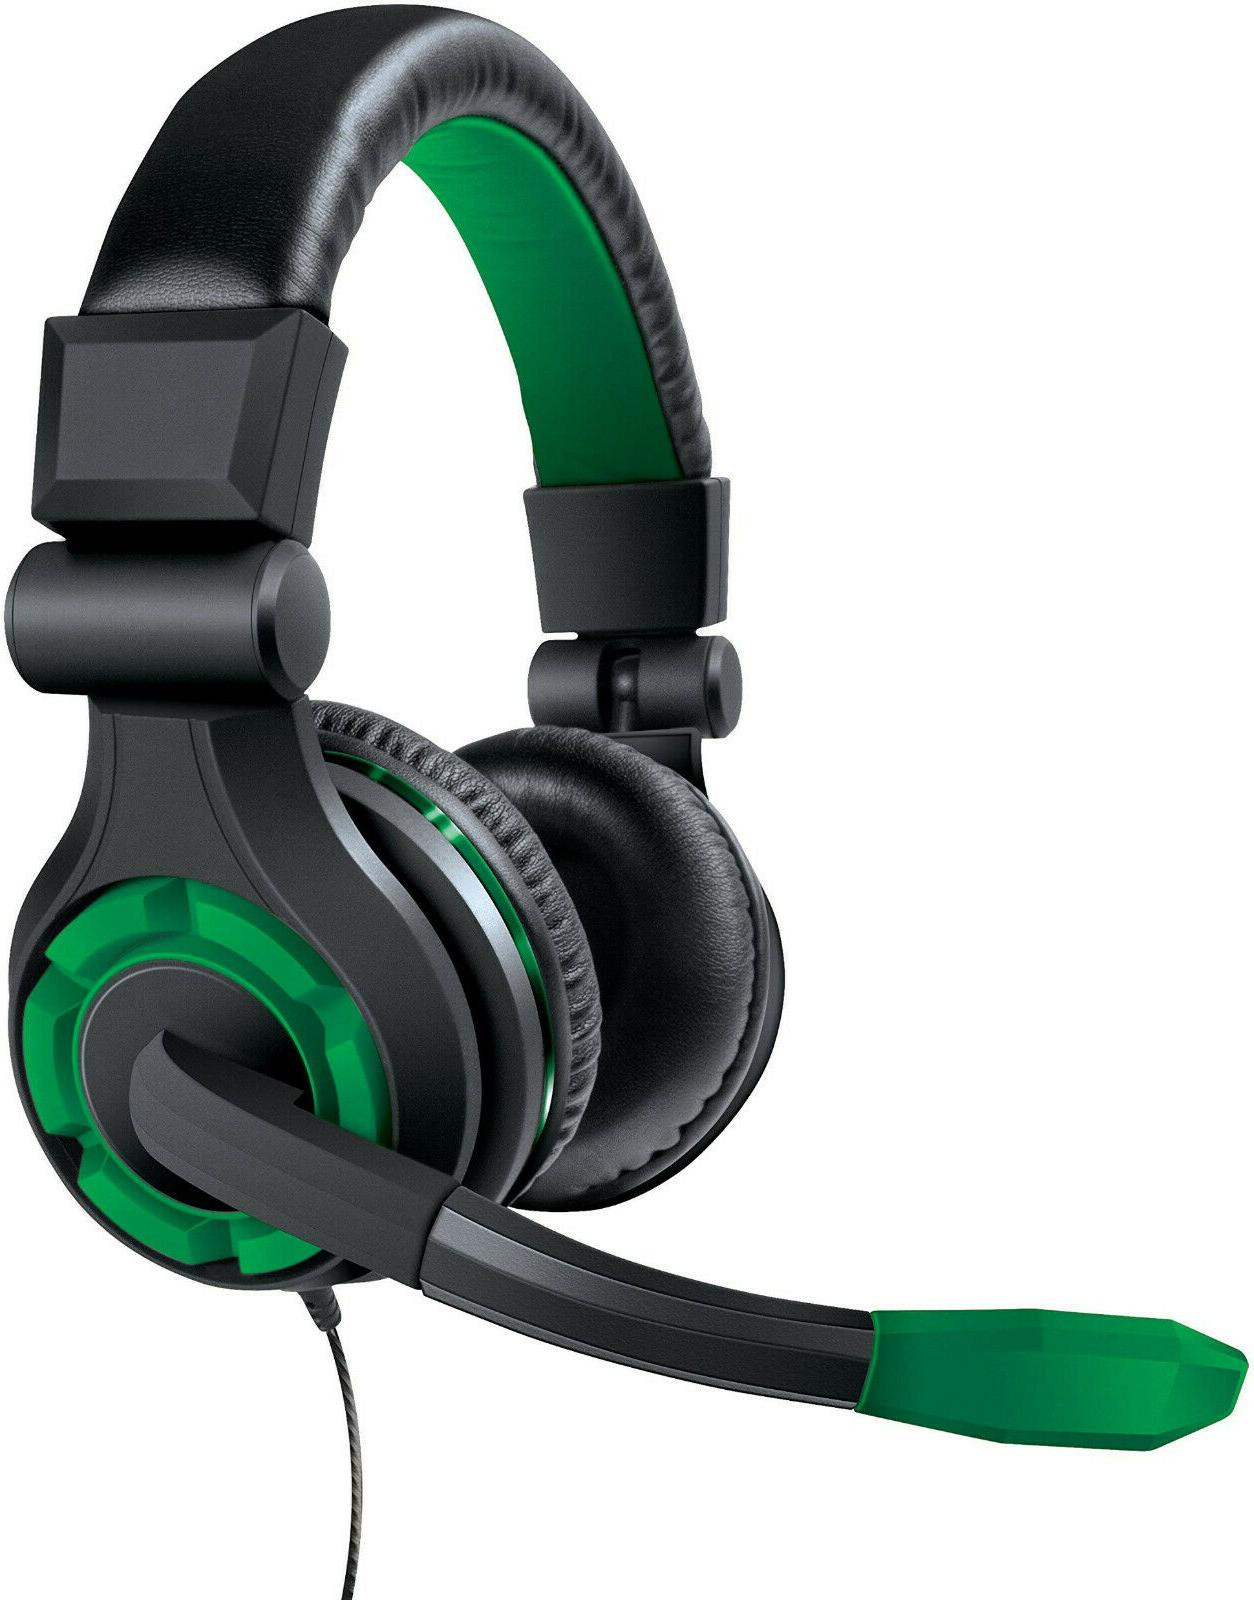 GRX-340 PS4, Xbox One, with Mic